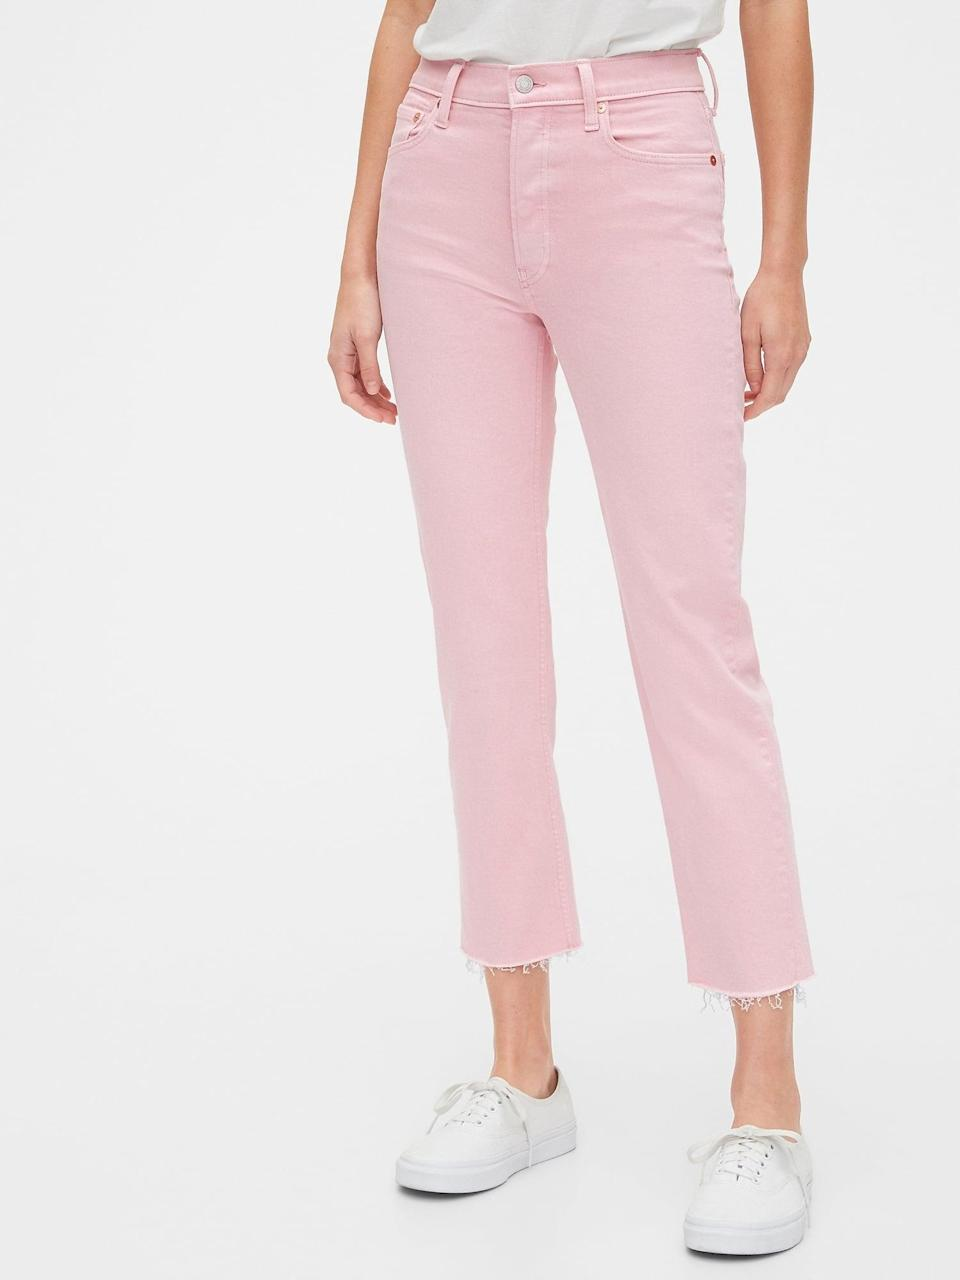 <p>Spending a warm weather Valentine's day? We love these beachy <span>Gap High Rise Cheeky Straight Jeans with Raw Hem</span> ($27, originally $60) paired with white slip ons.</p>